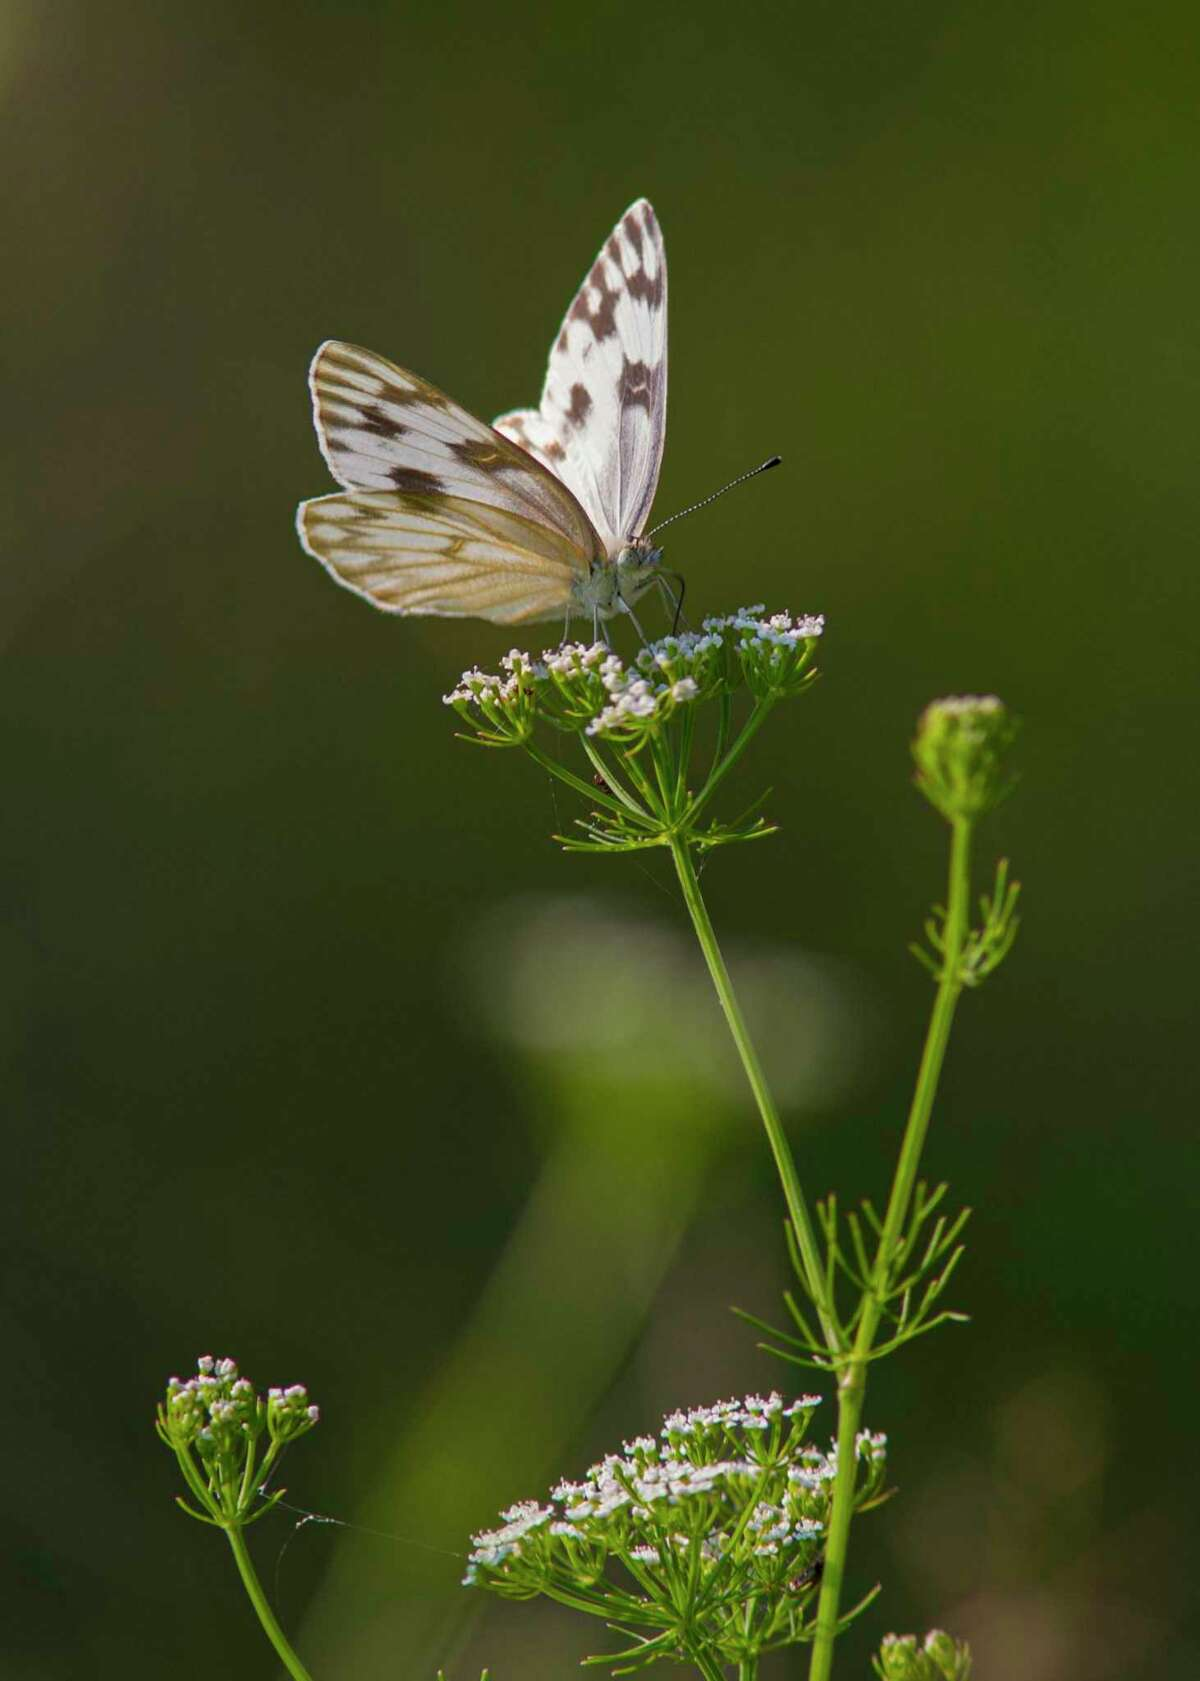 Butterflies, like this Checkered White, need host plants for breeding and nectar plants for feeding.